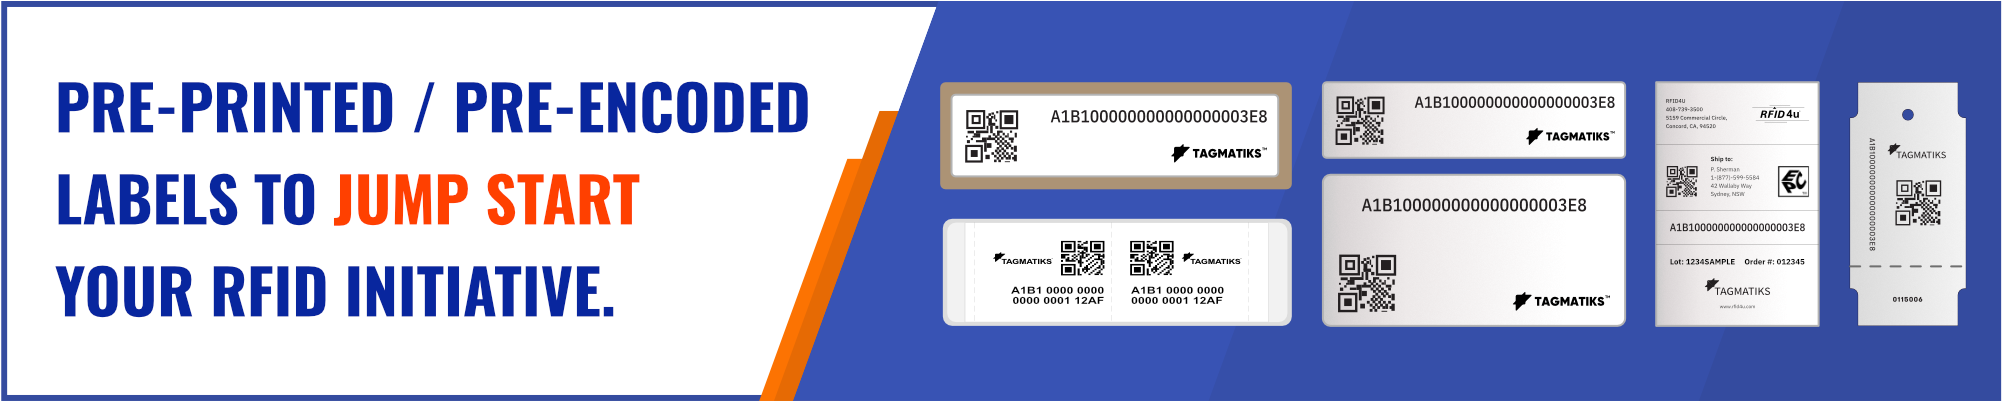 PRE-PRINTED / PRE-ENCODED LABELS TO JUMP START YOUR RFID             INITIATIVE.